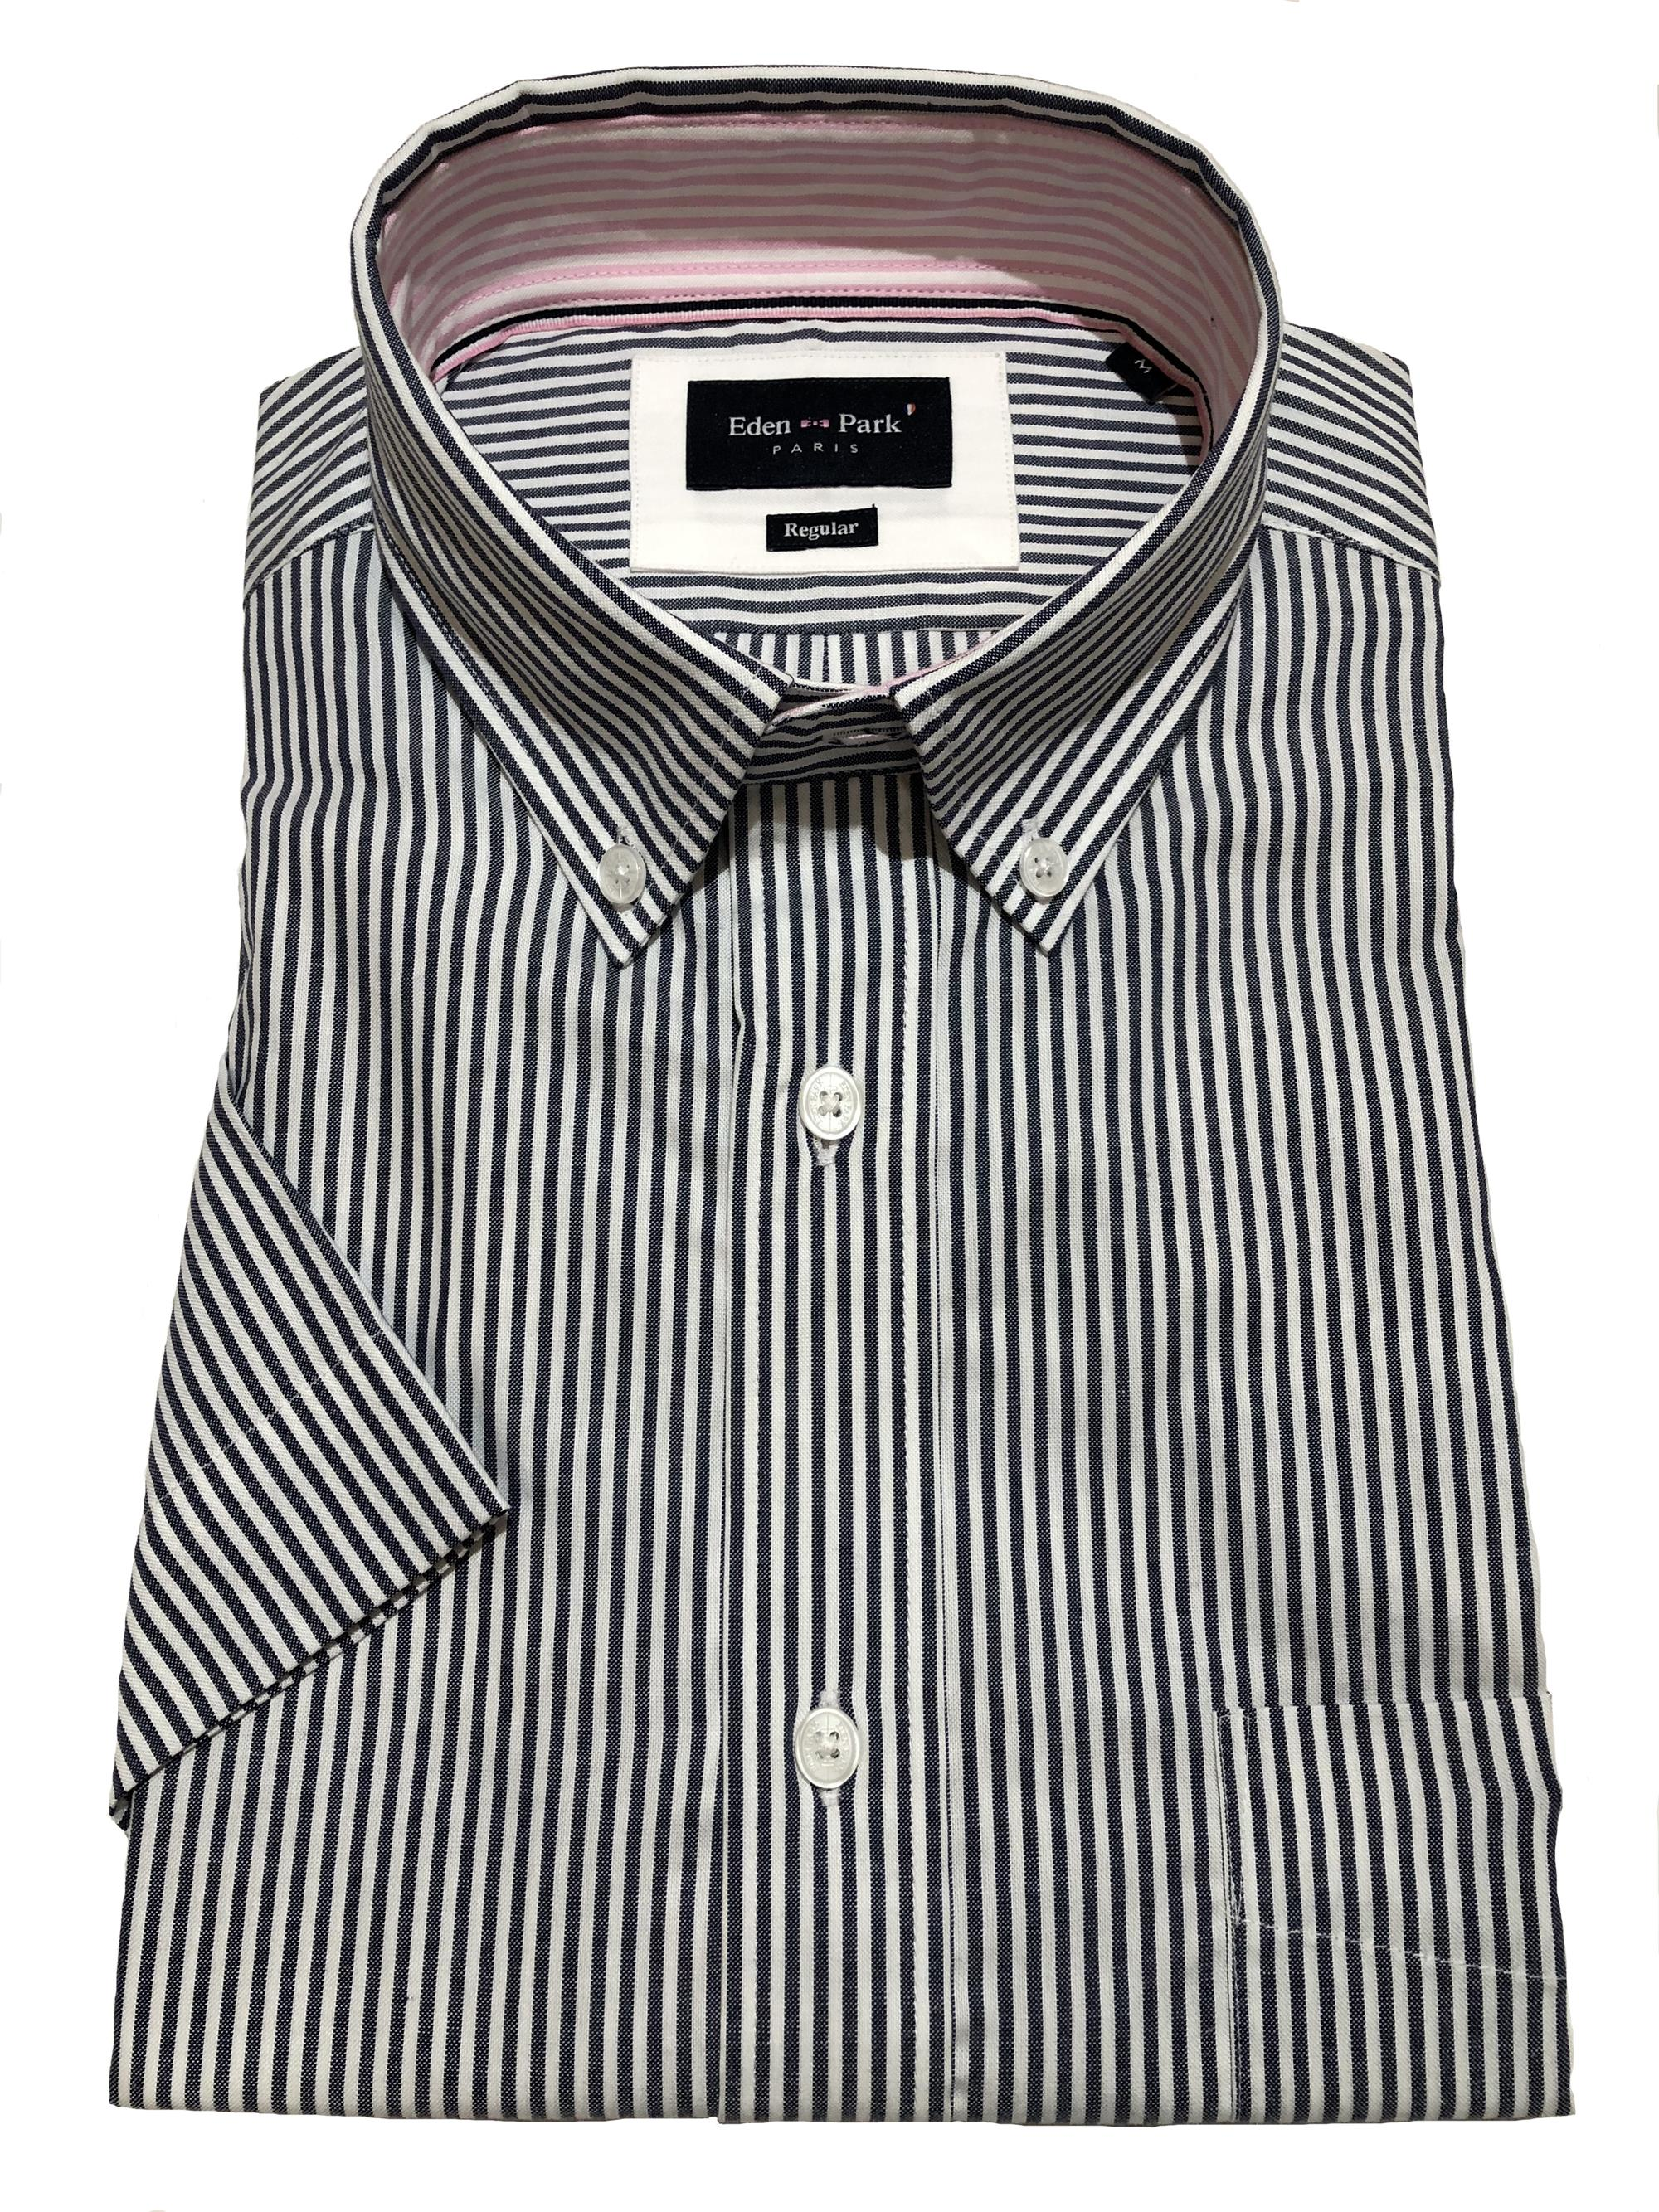 classic striped short sleeve shirt (dark blue)